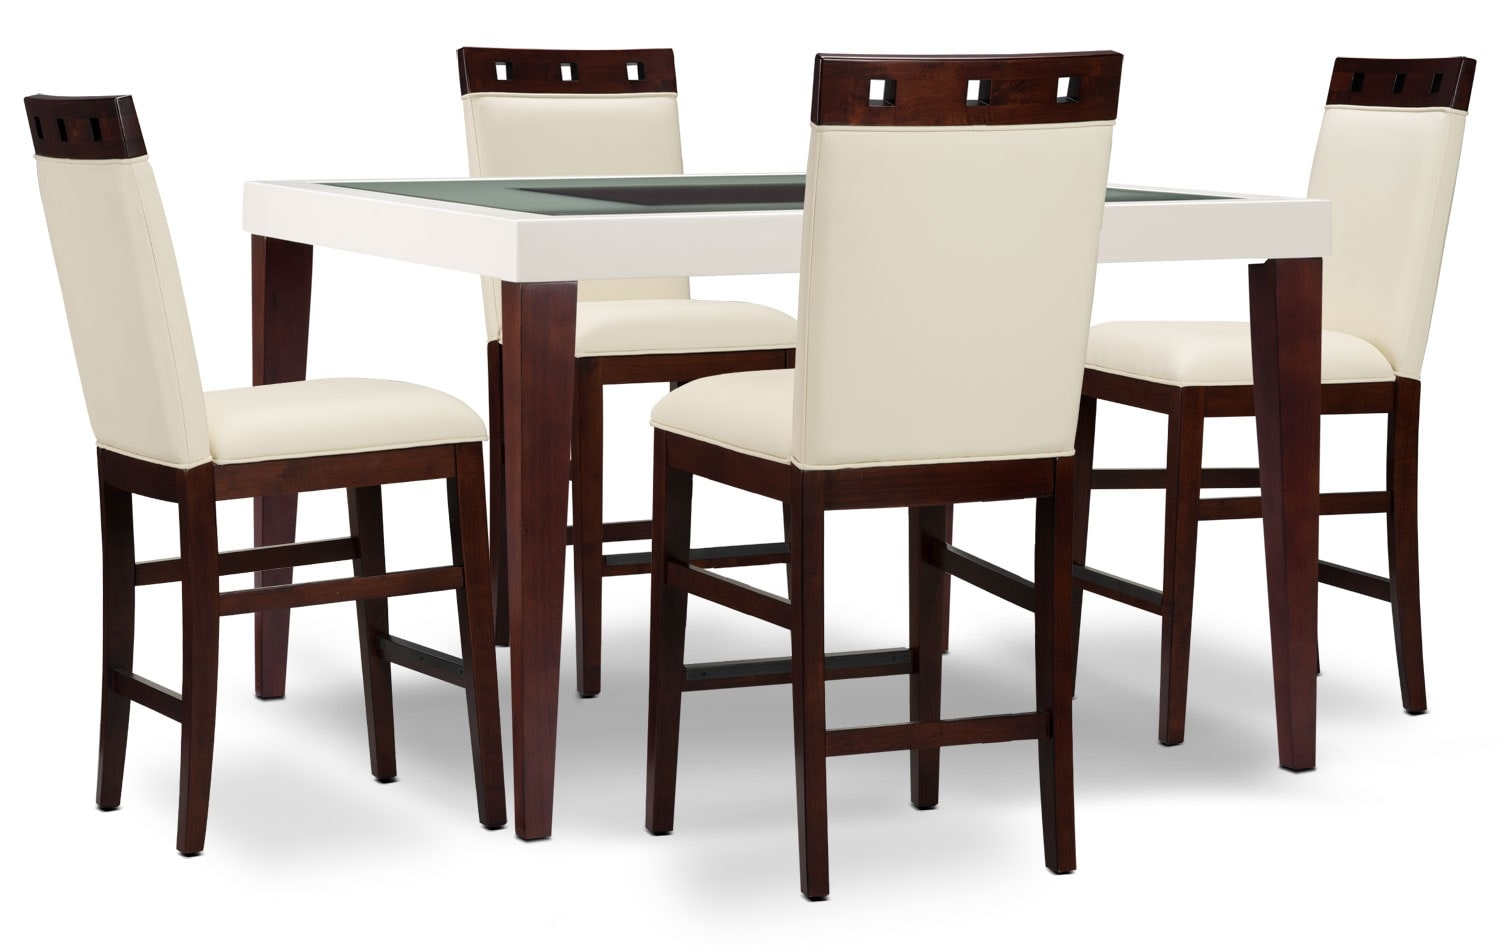 Zeno 5-Piece Counter-Height Dining Package with Wood Top Chair